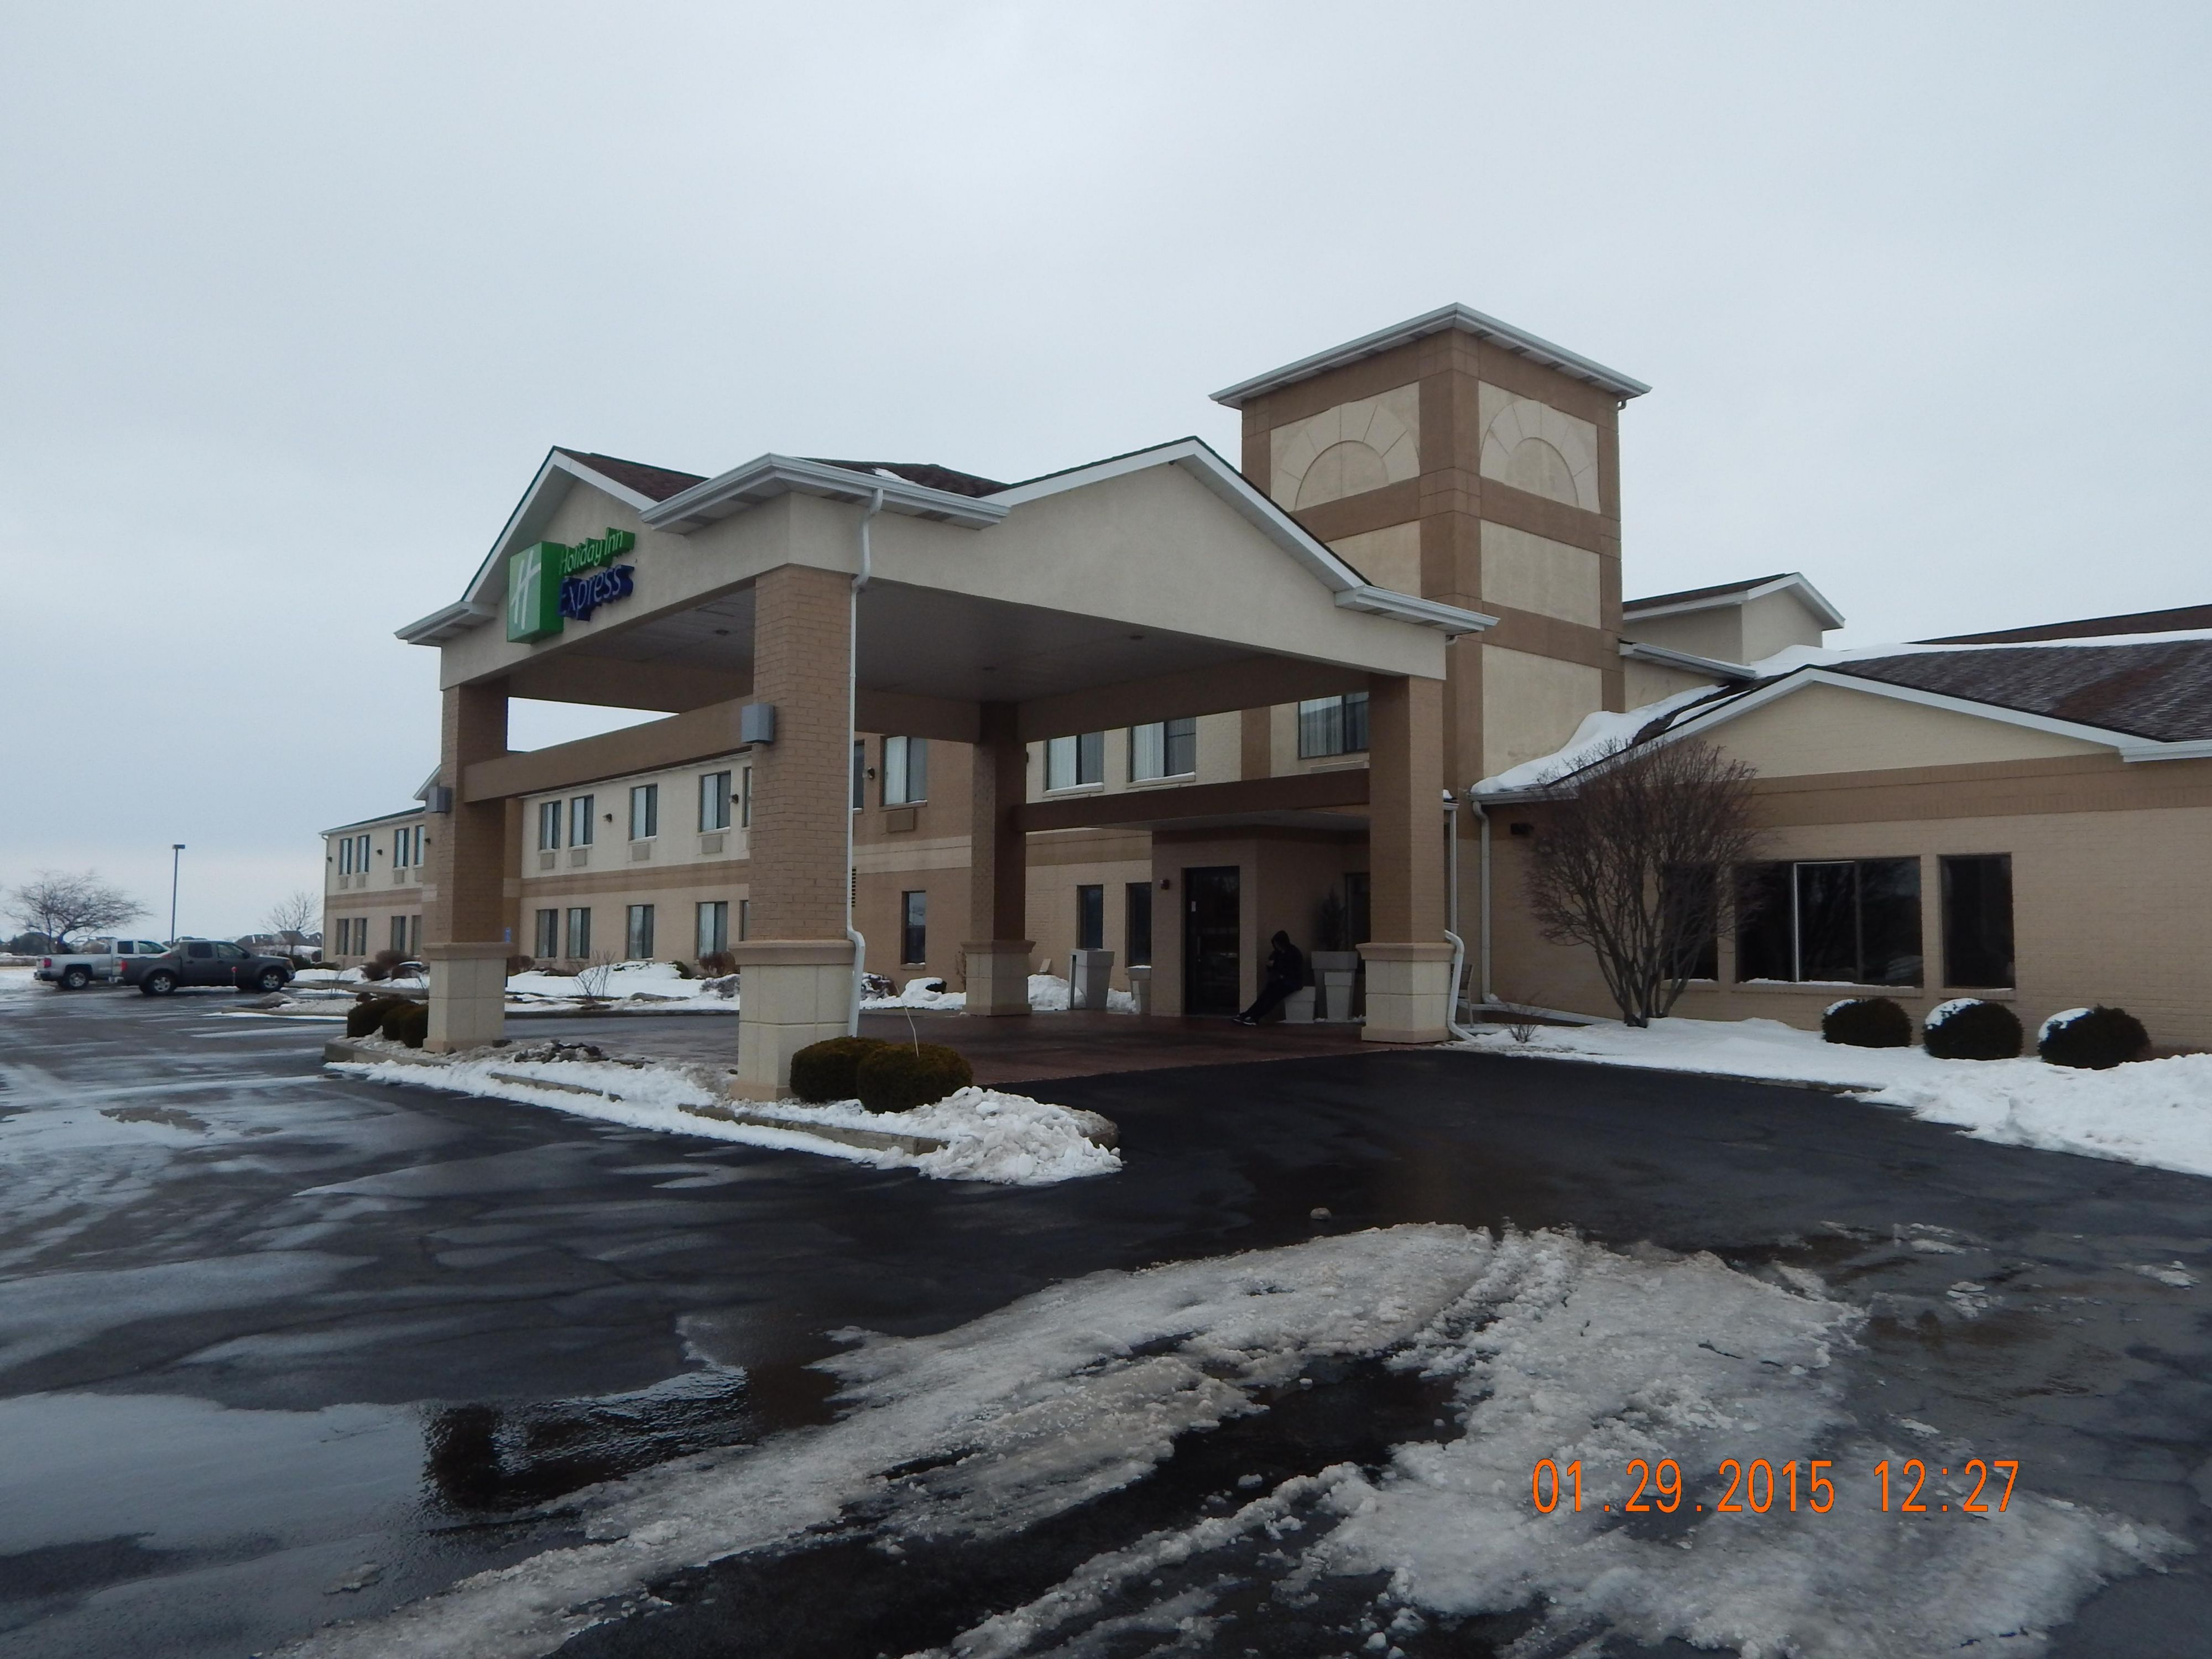 Hotel Exterior: Winter Wonderland